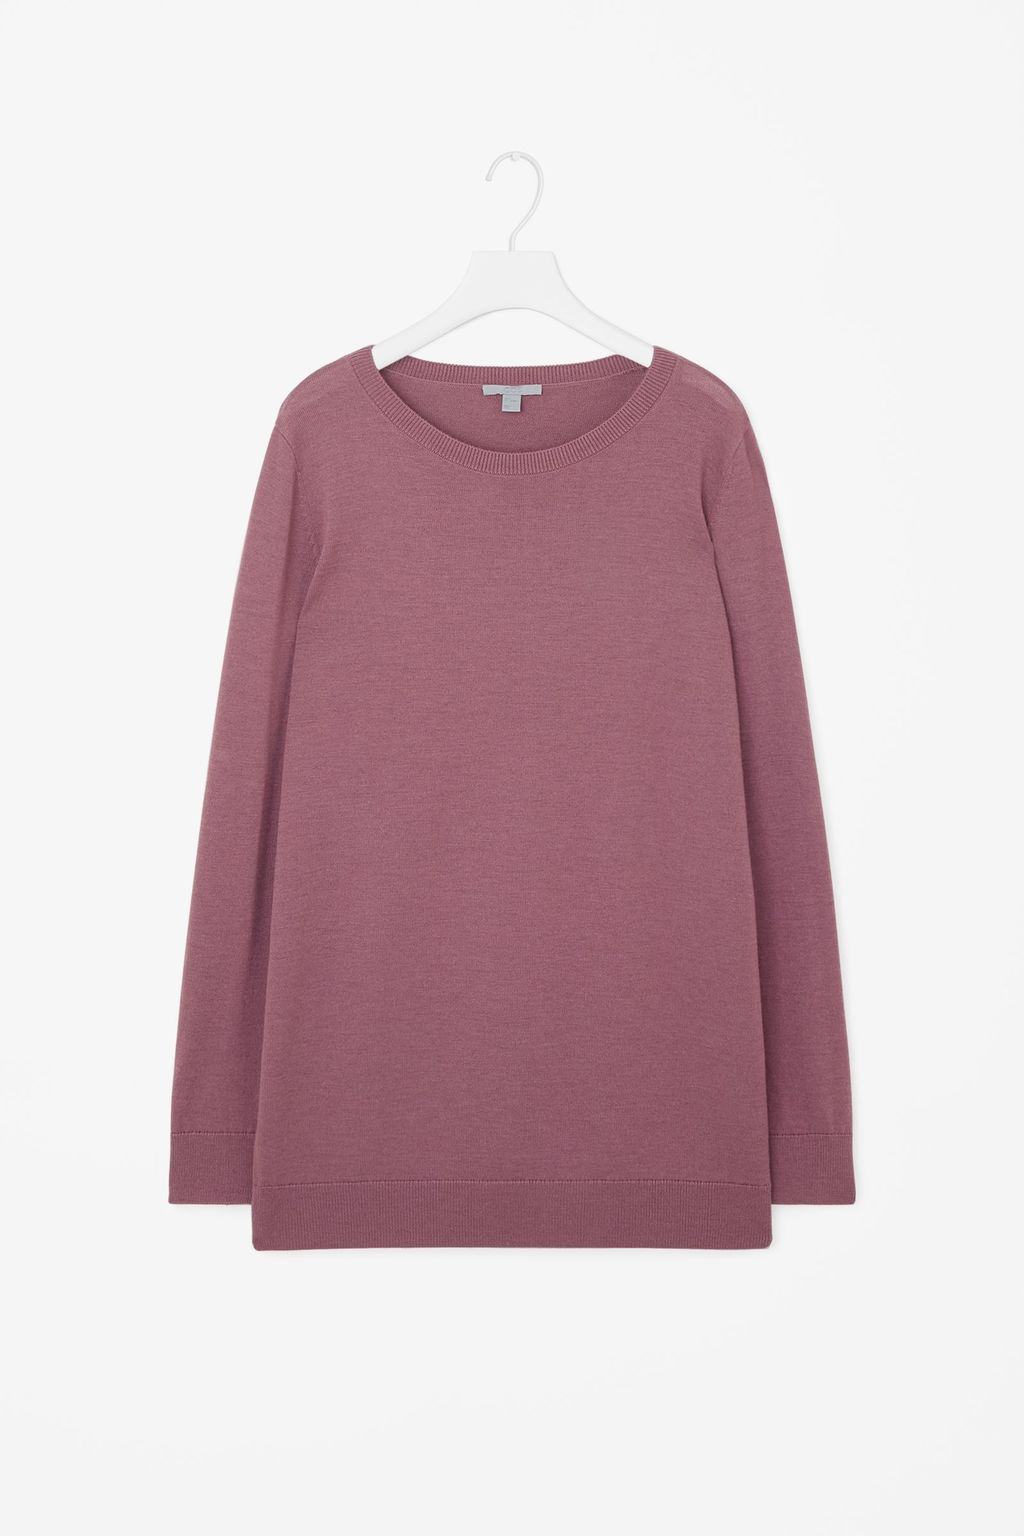 Contrast Back Knit Jumper - neckline: round neck; pattern: plain; style: standard; predominant colour: lilac; occasions: casual; length: standard; fibres: wool - 100%; fit: slim fit; sleeve length: long sleeve; sleeve style: standard; texture group: knits/crochet; pattern type: fabric; season: s/s 2016; wardrobe: highlight